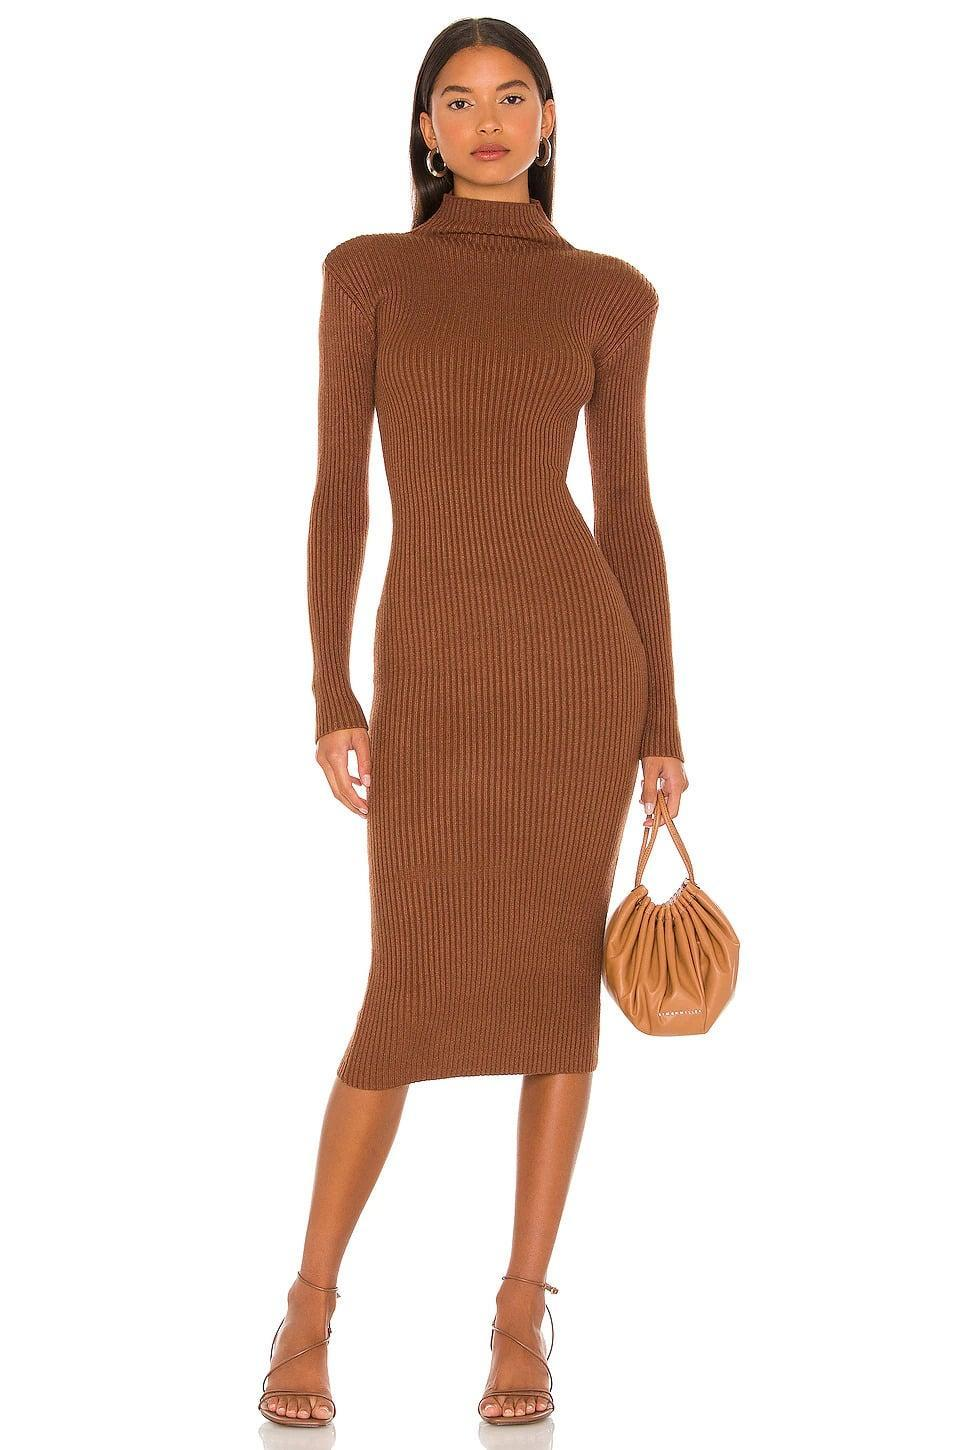 <p>The <span>ASTR the Label Abilene Sweater Dress in Nutmeg</span> ($98) has light padding on the shoulders for a chic structured look. The color is just chef's kiss perfection!</p>